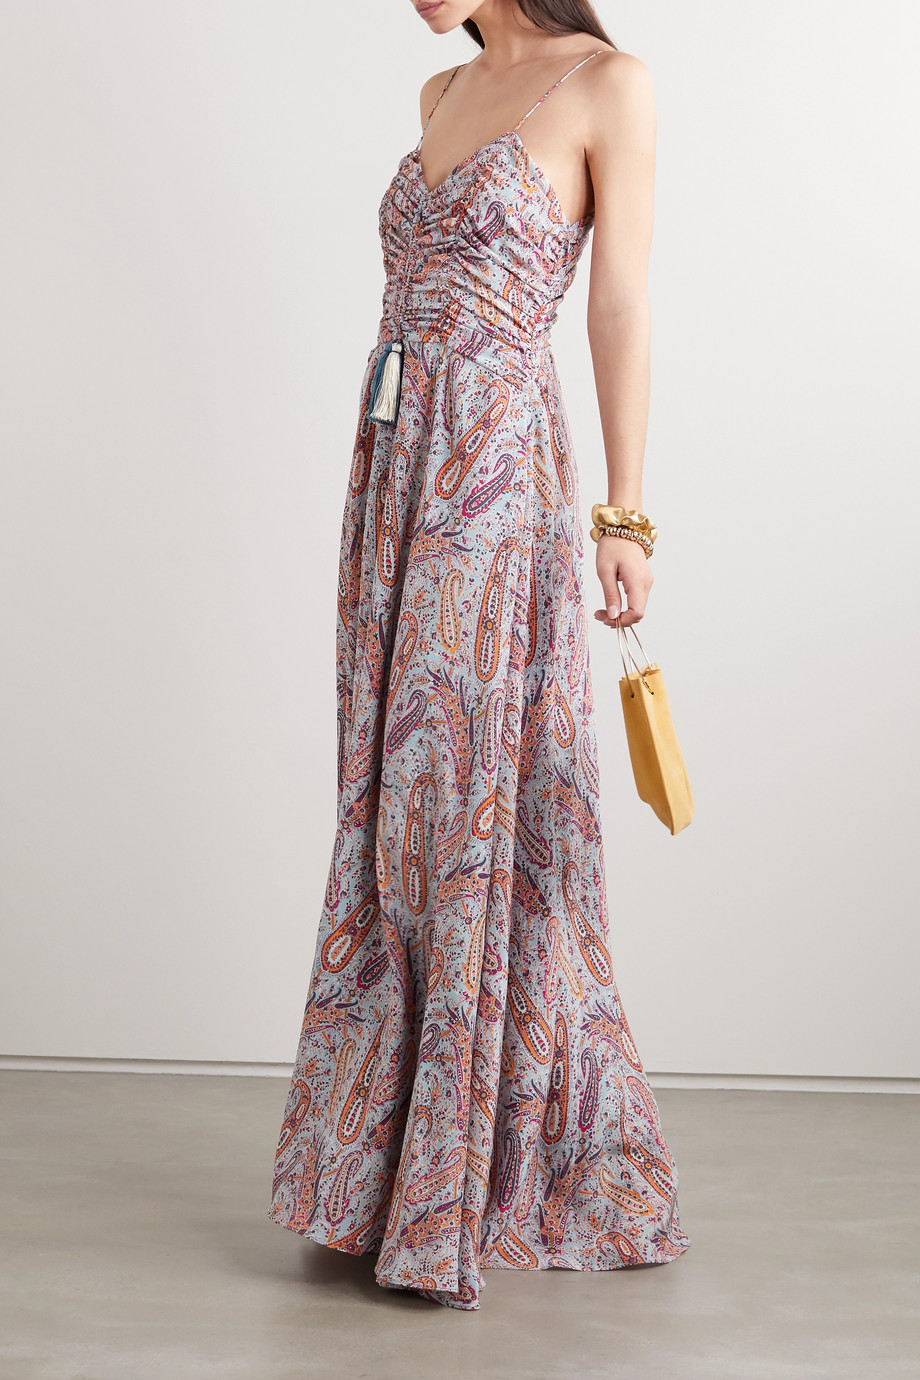 Etro Tasseled paisley-print silk crepe de chine maxi dress